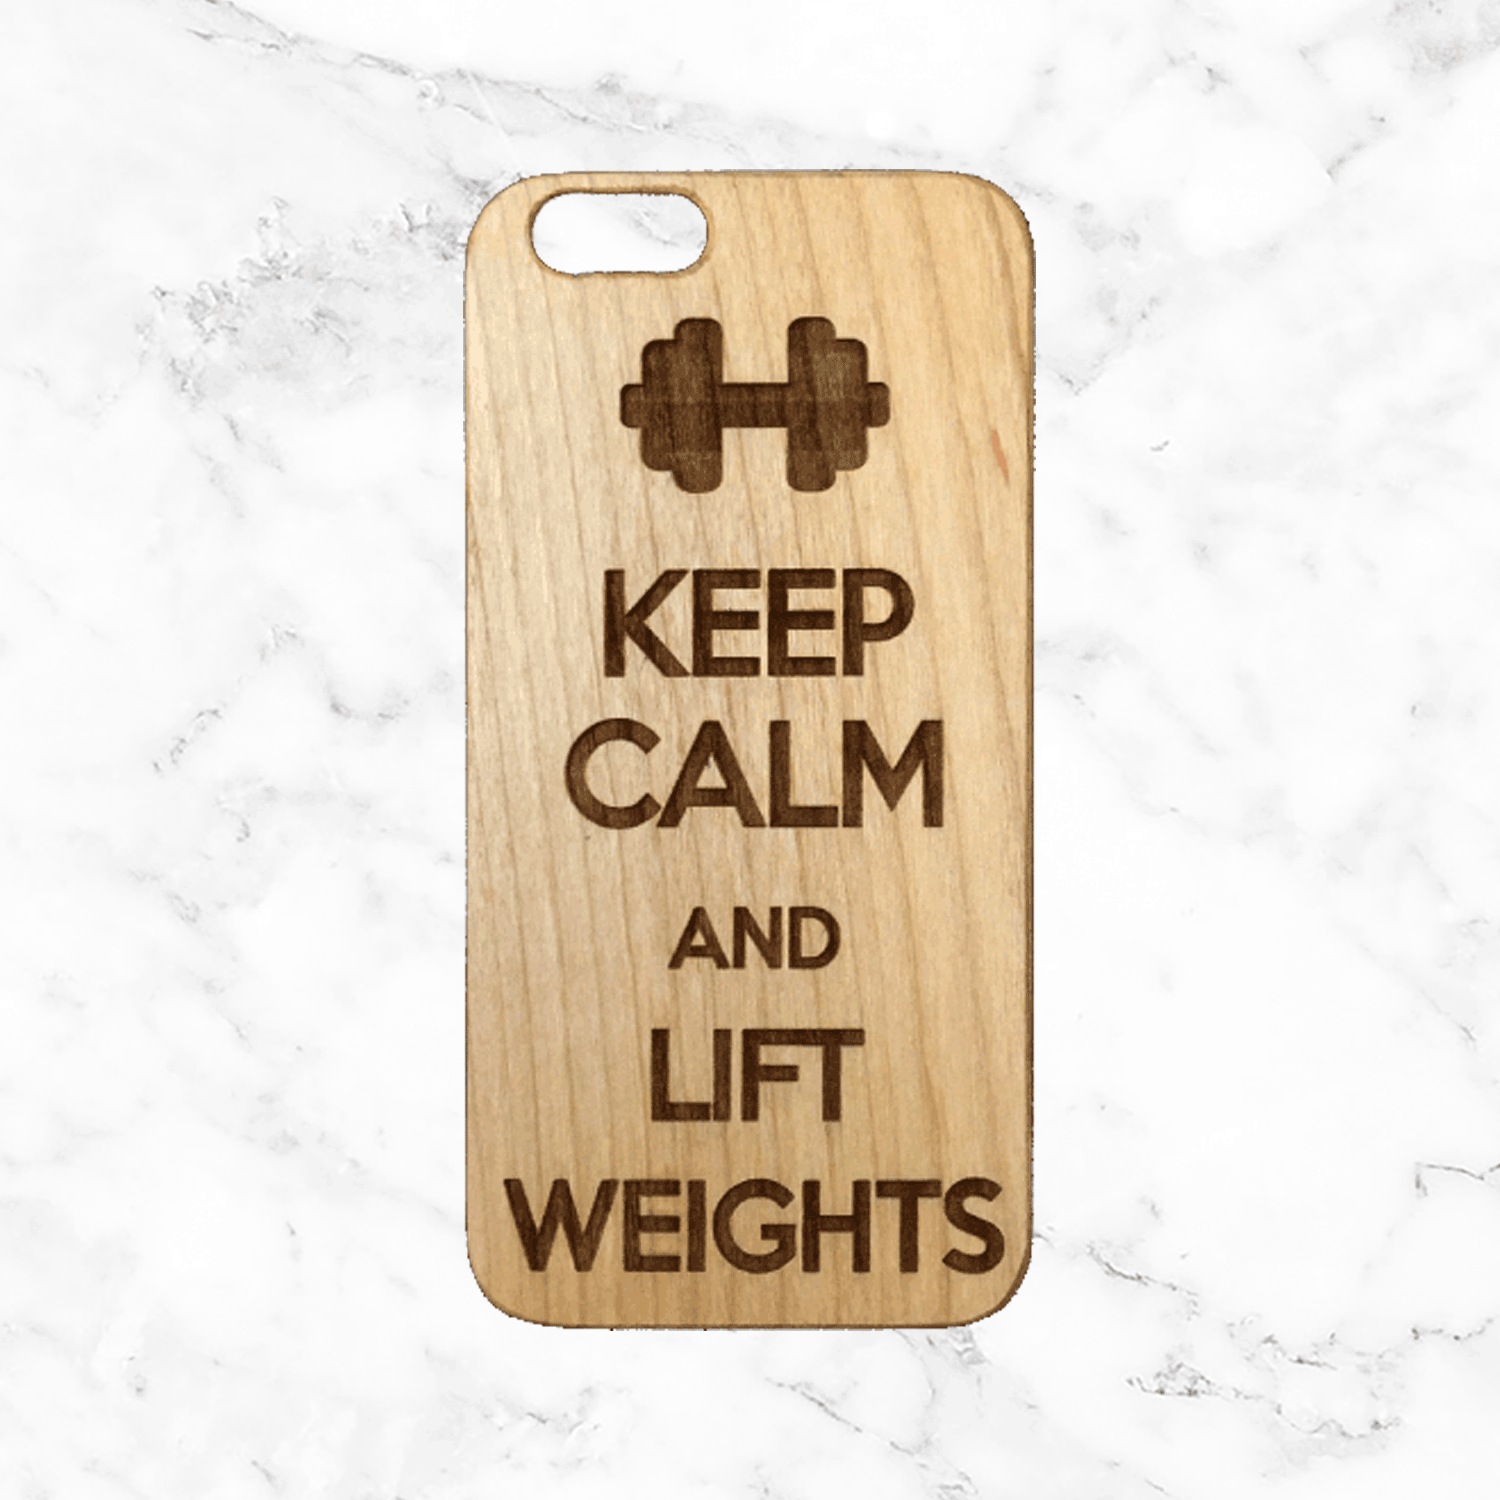 Keep Calm and Lift Weights - Body Buidling / Gym Wood Phone Case